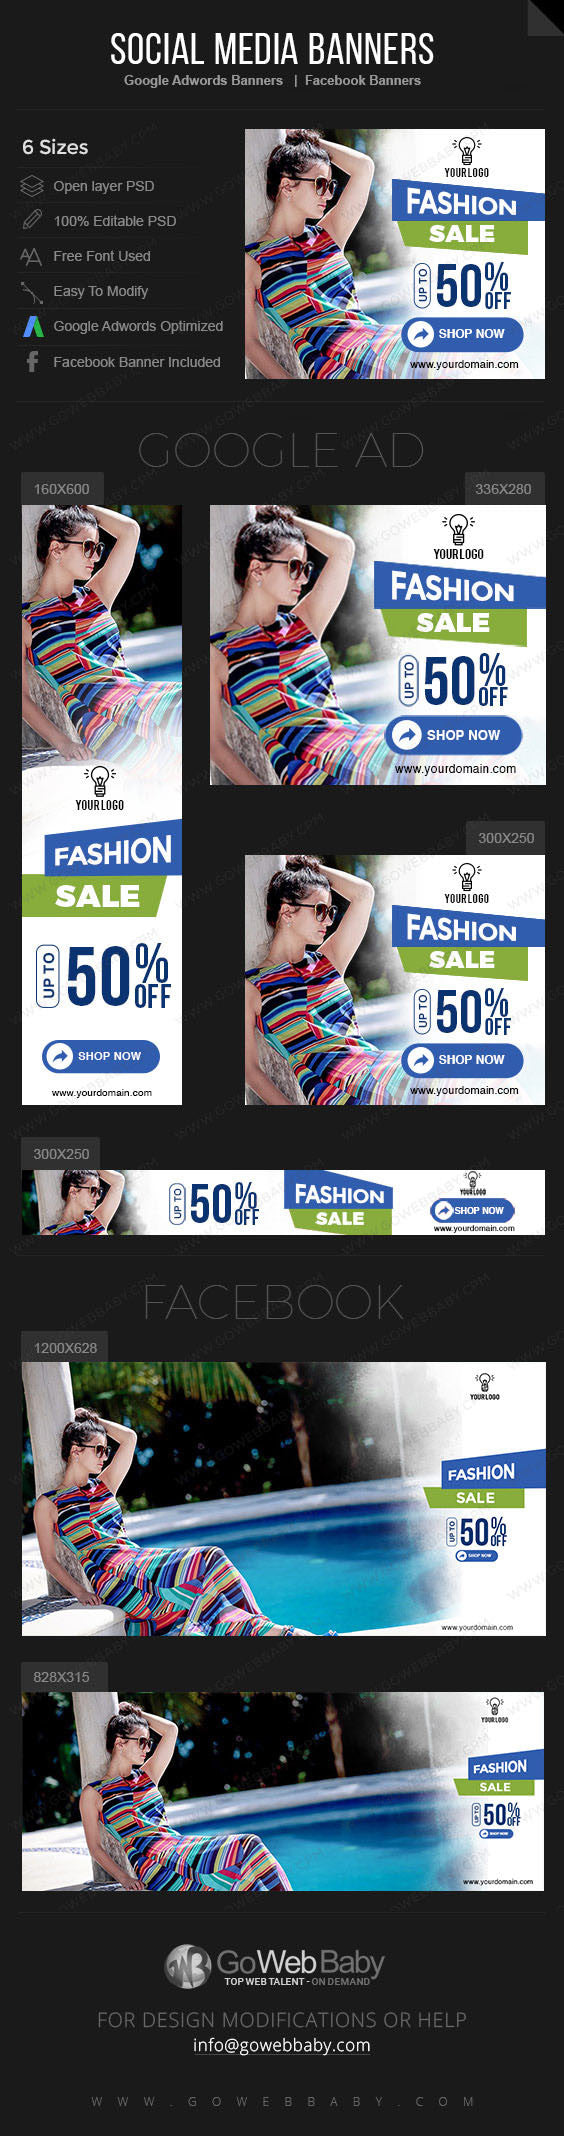 Google Adwords Display Banner with Facebook banners -Fashion Store for Website Marketing - GoWebBaby.Com